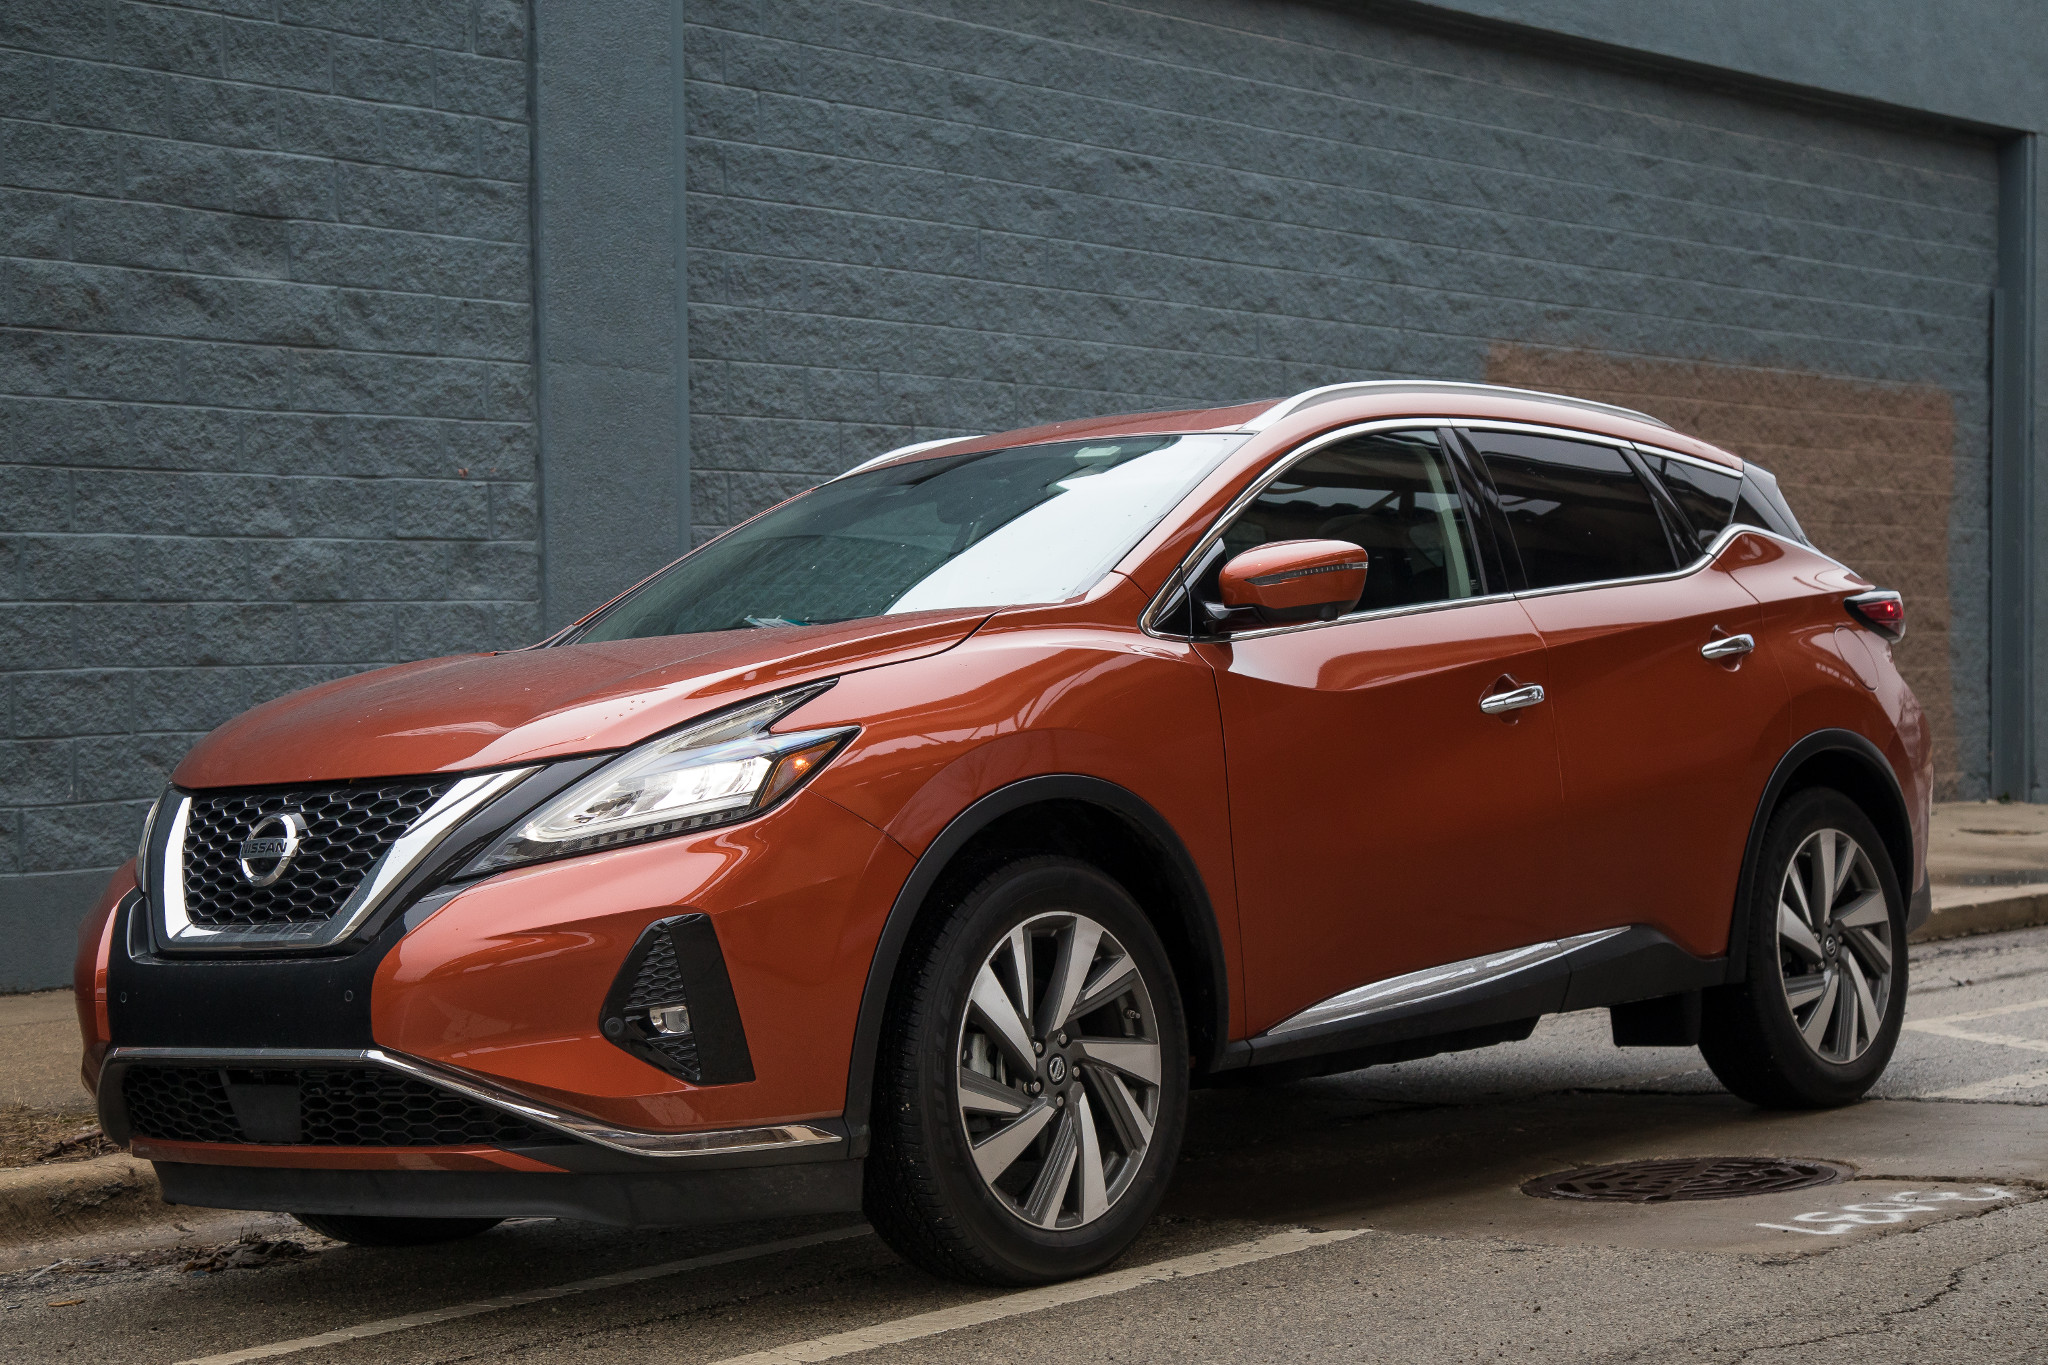 2019 Nissan Murano: 10 Things We Like and 5 We Don't ...